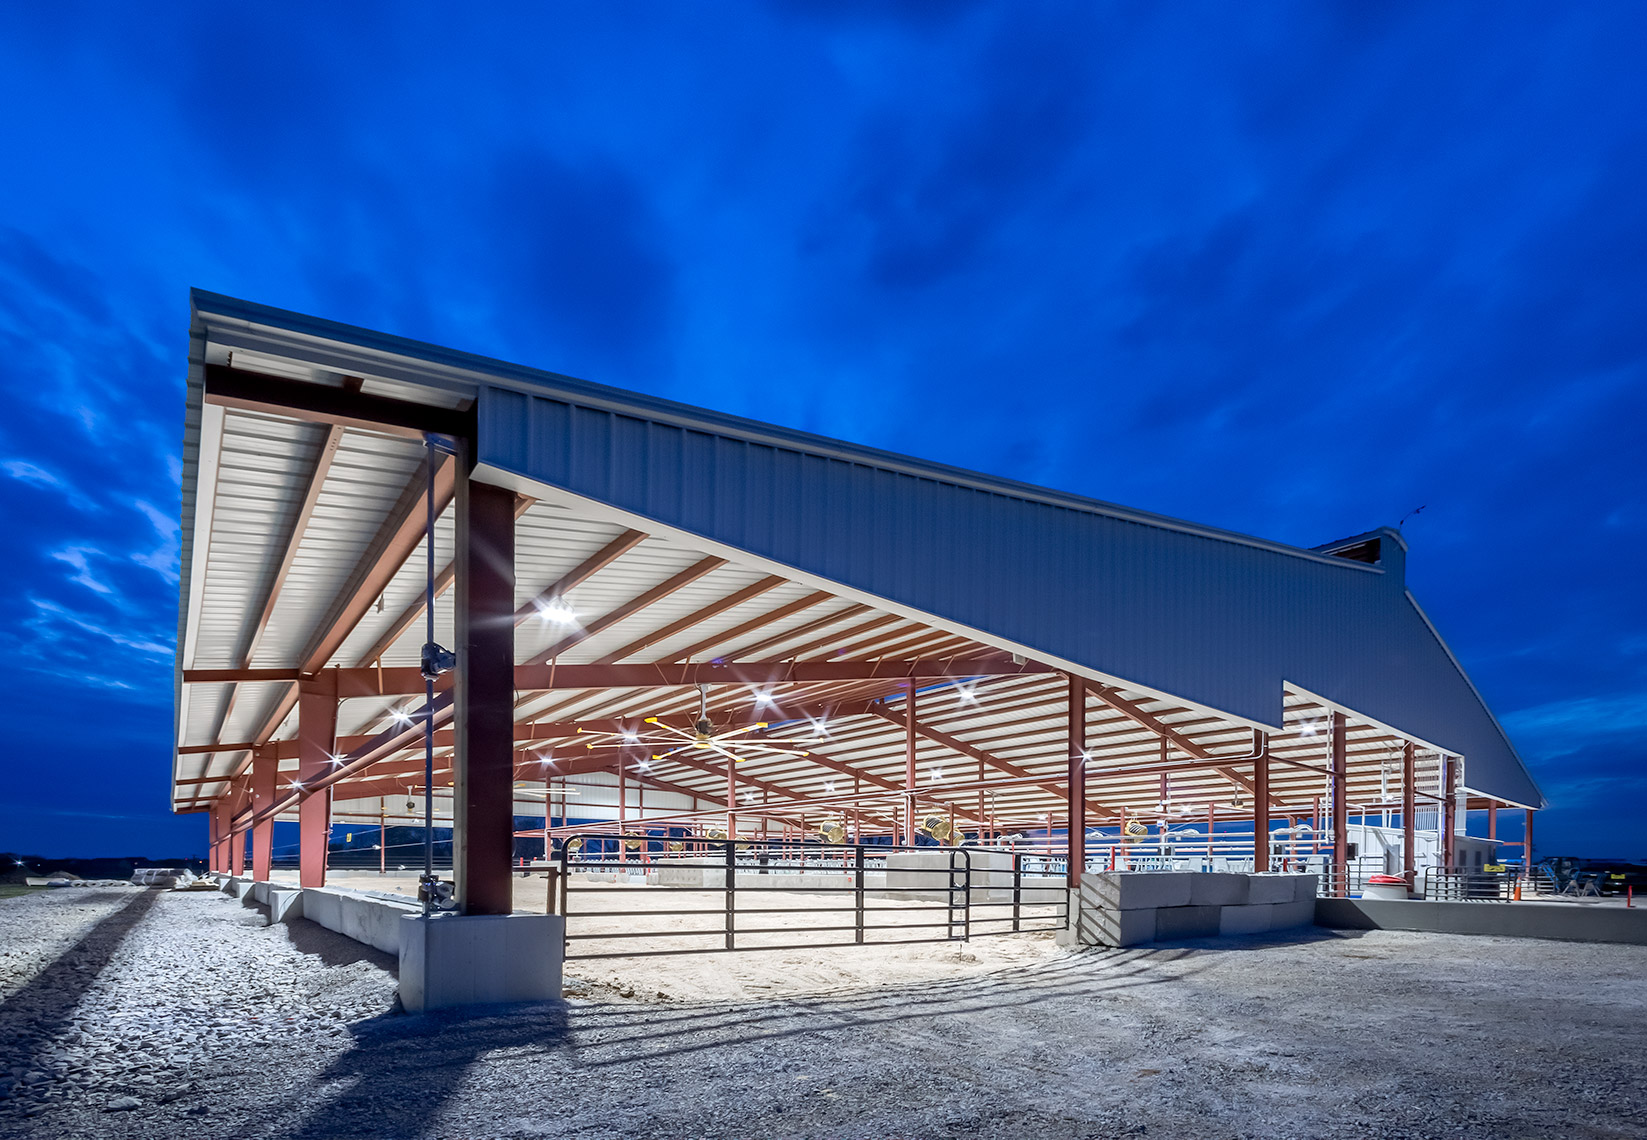 cattle shed at University of Kentucky dairy experimental station